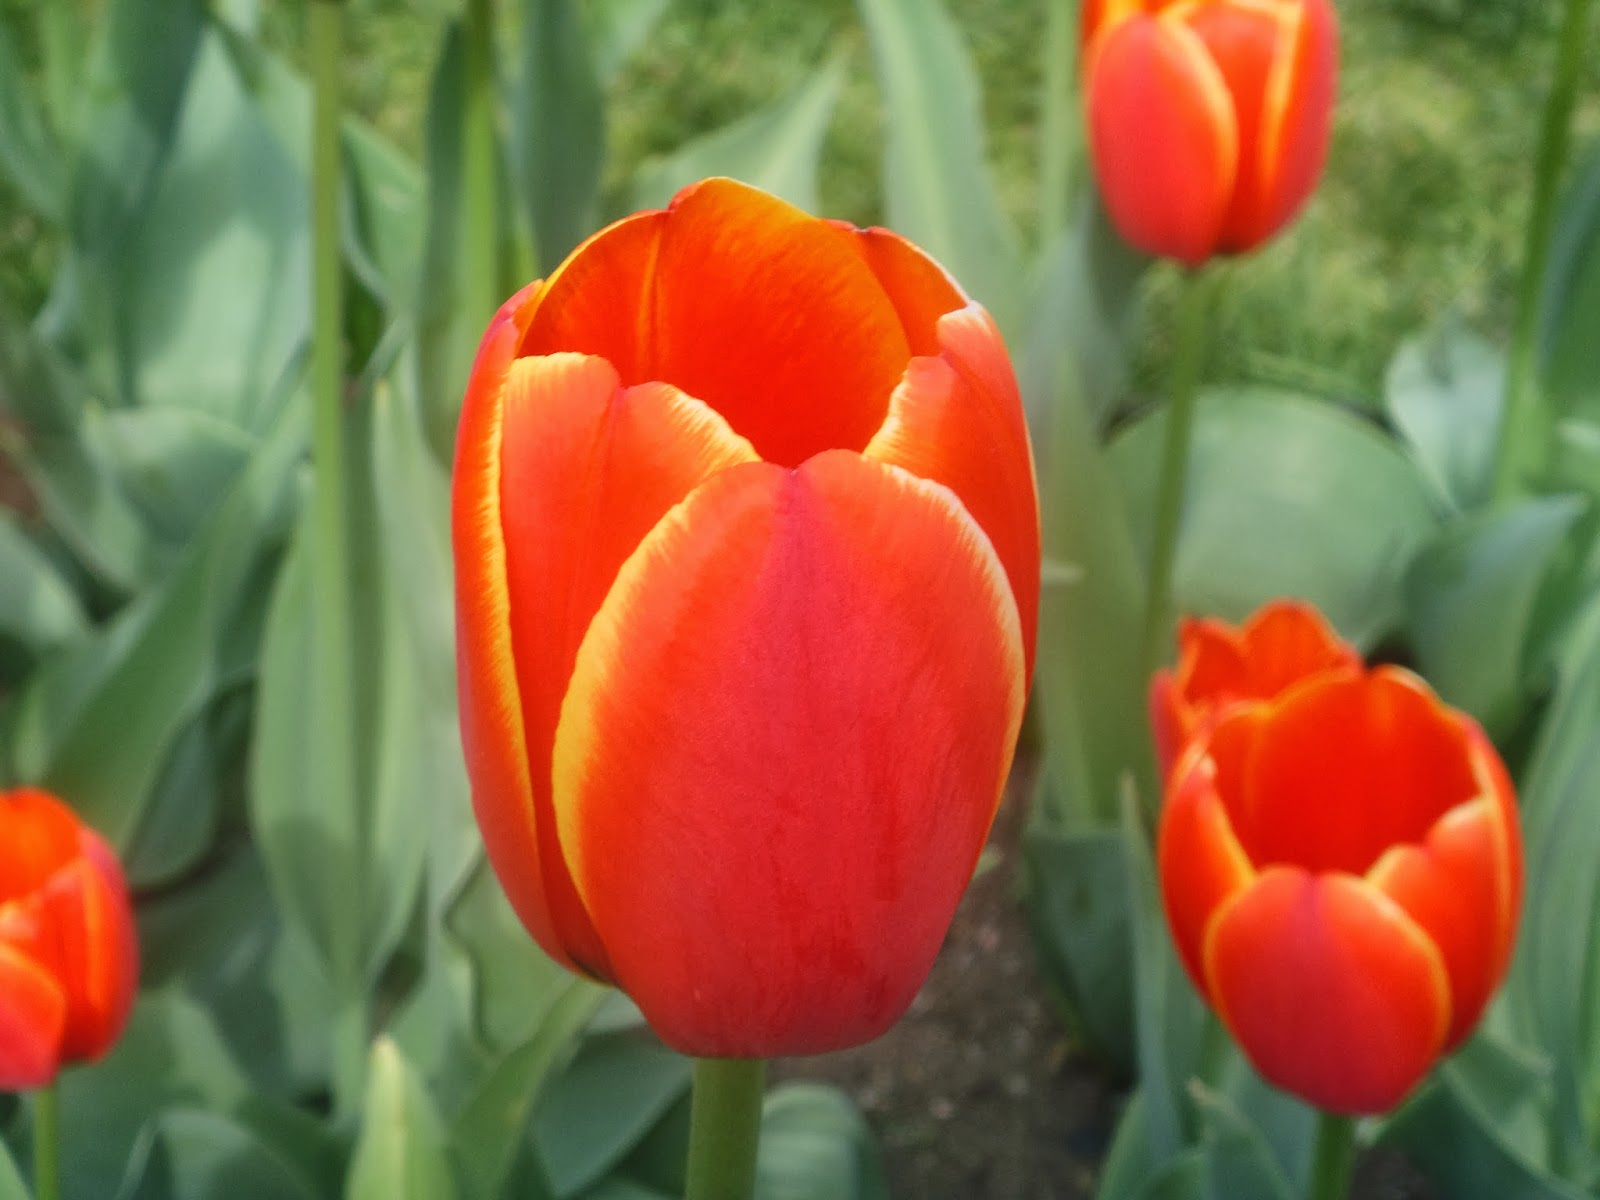 Red tulips with yellow edges